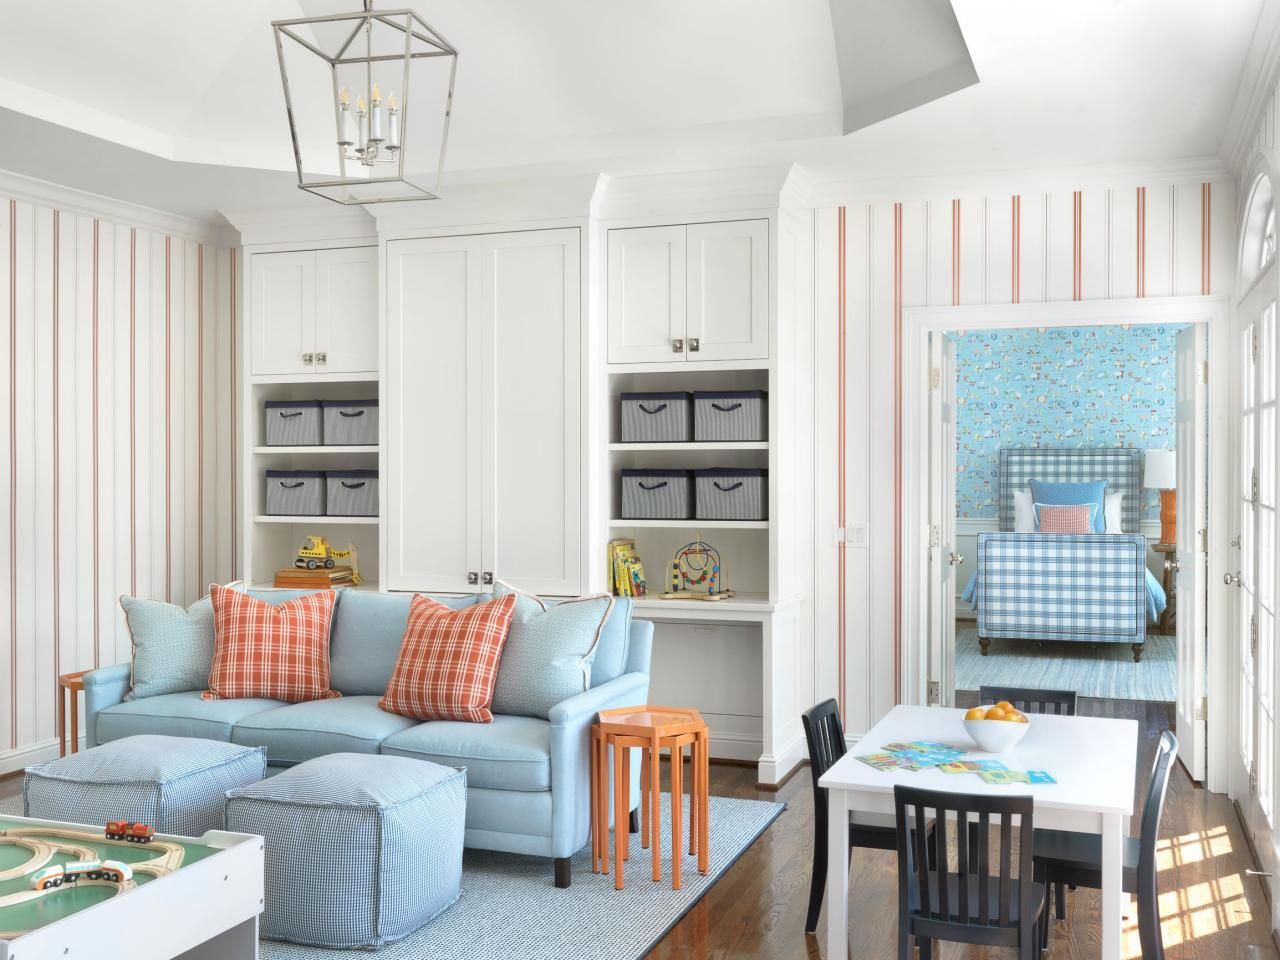 The HGTV Home by SherwinWilliams 2020 Color Collection of